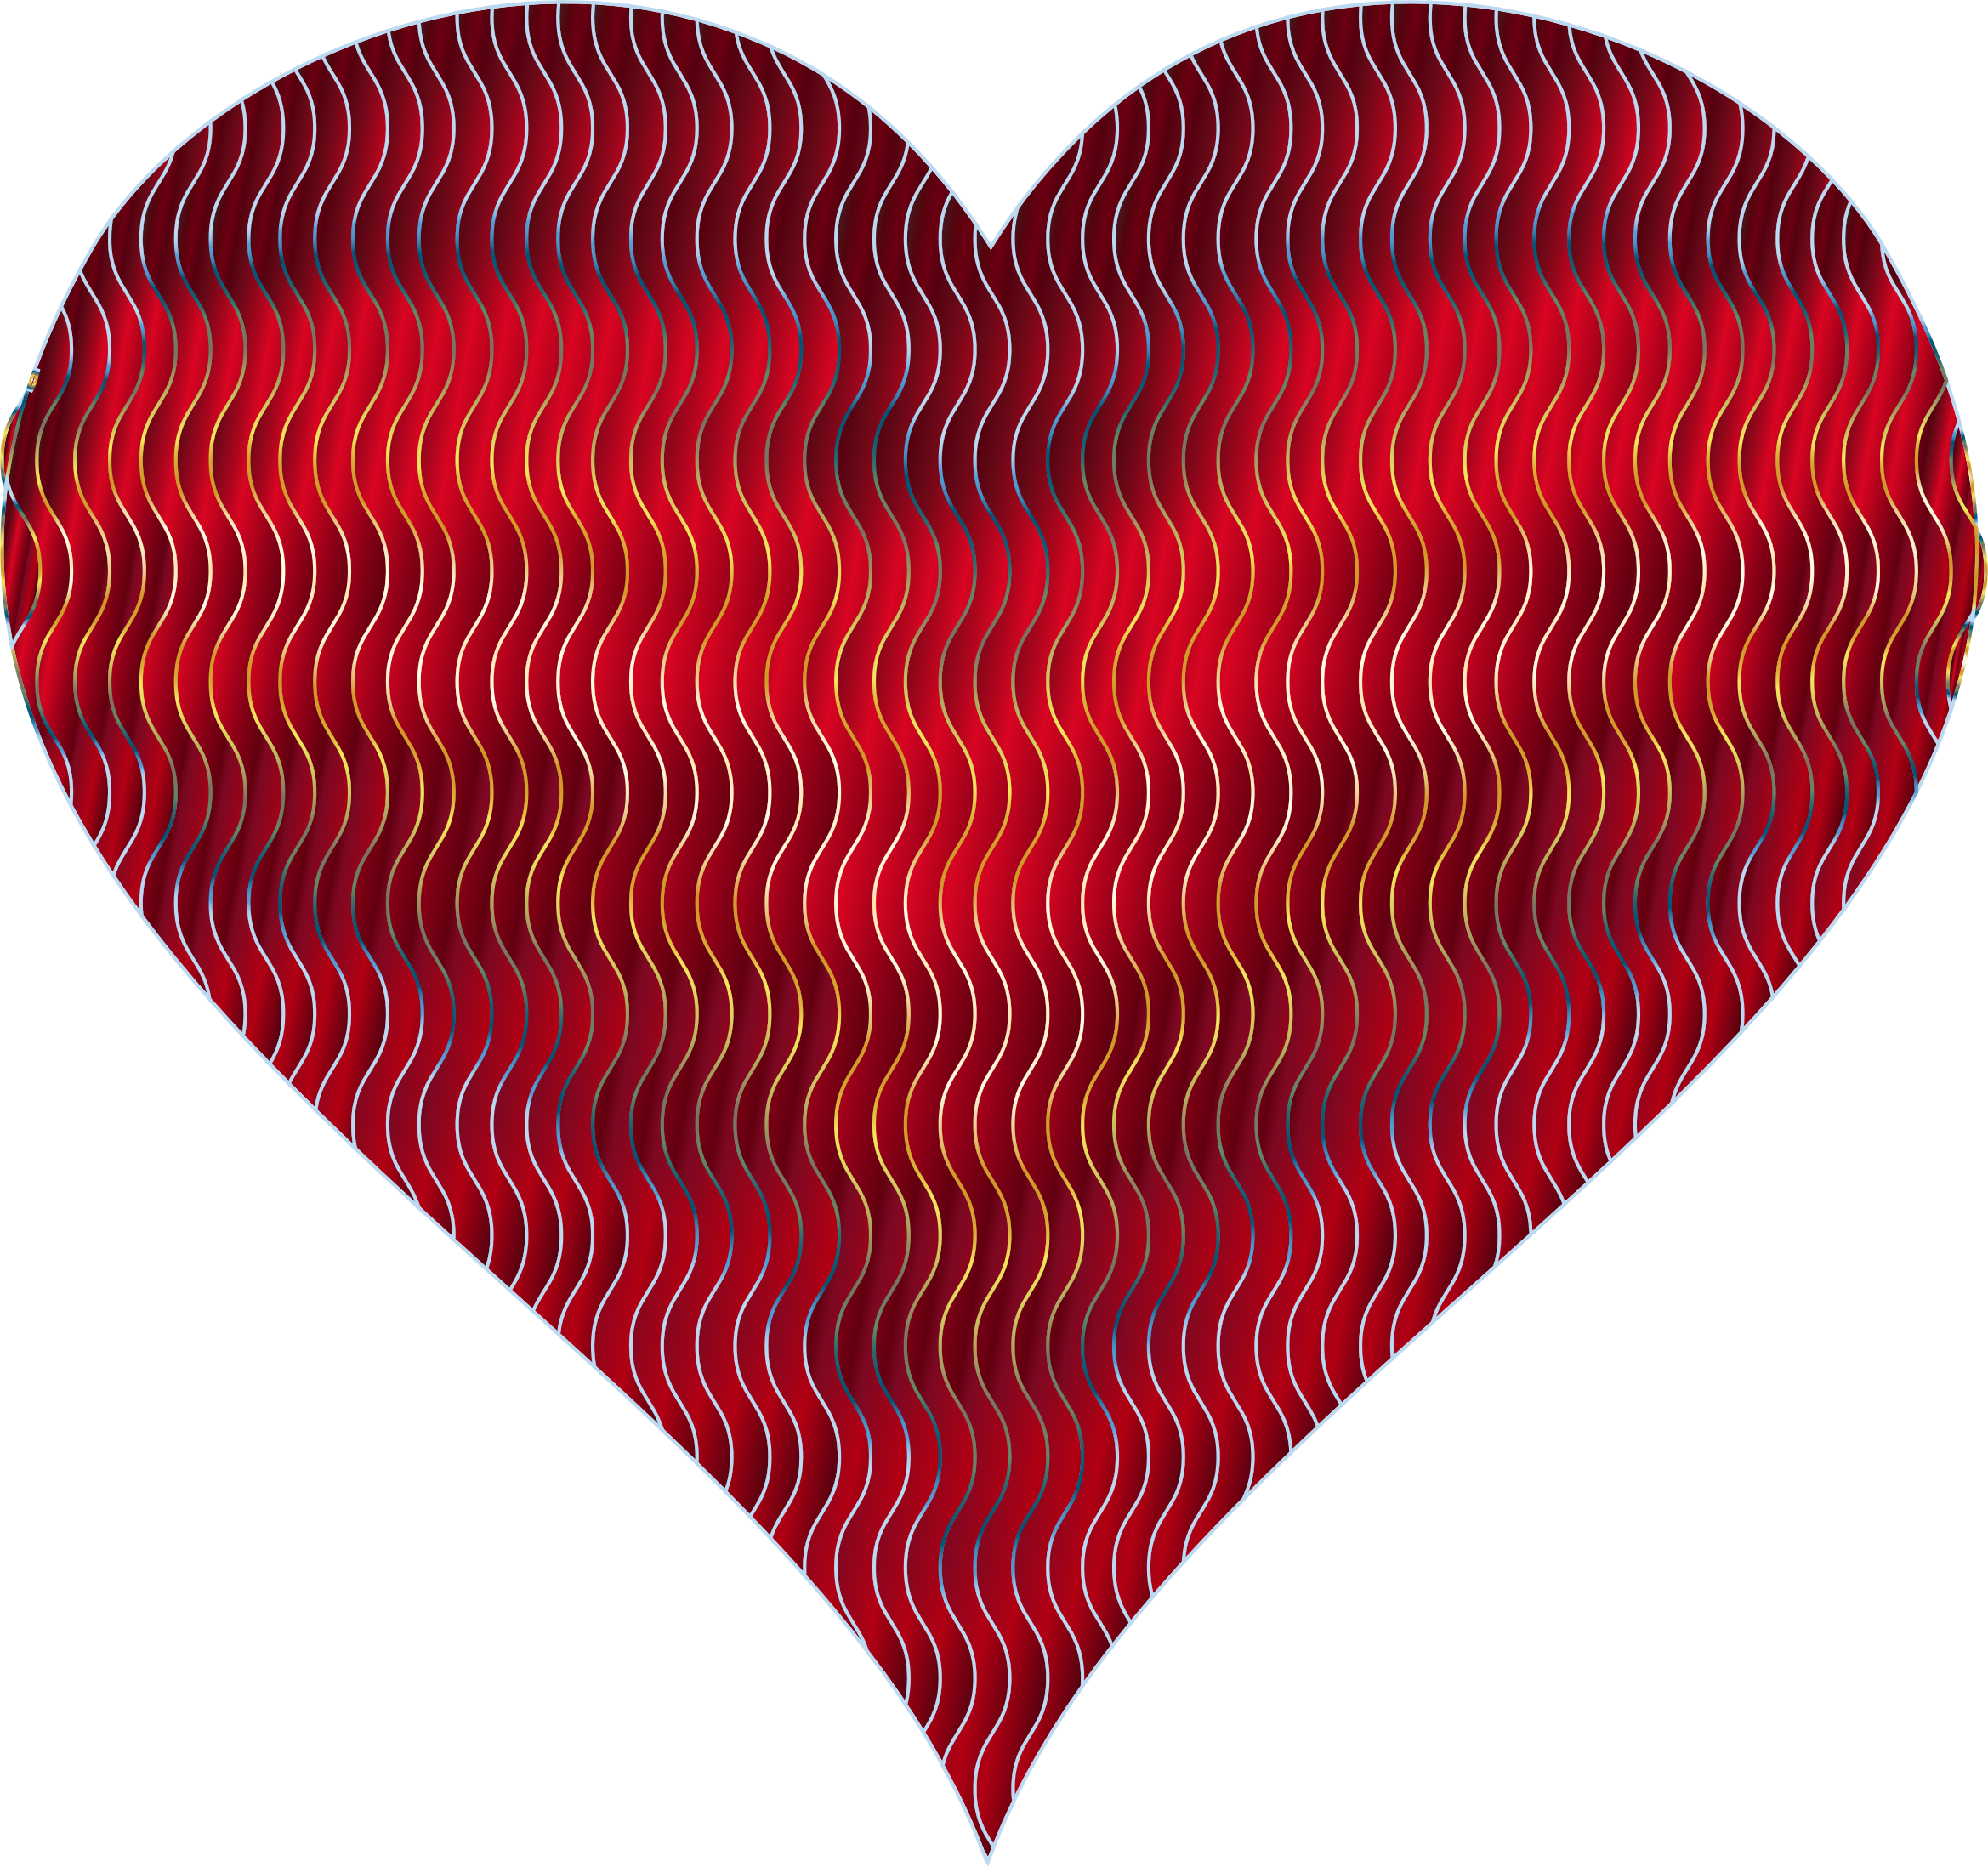 Colorful Wavy Heart 9 by GDJ